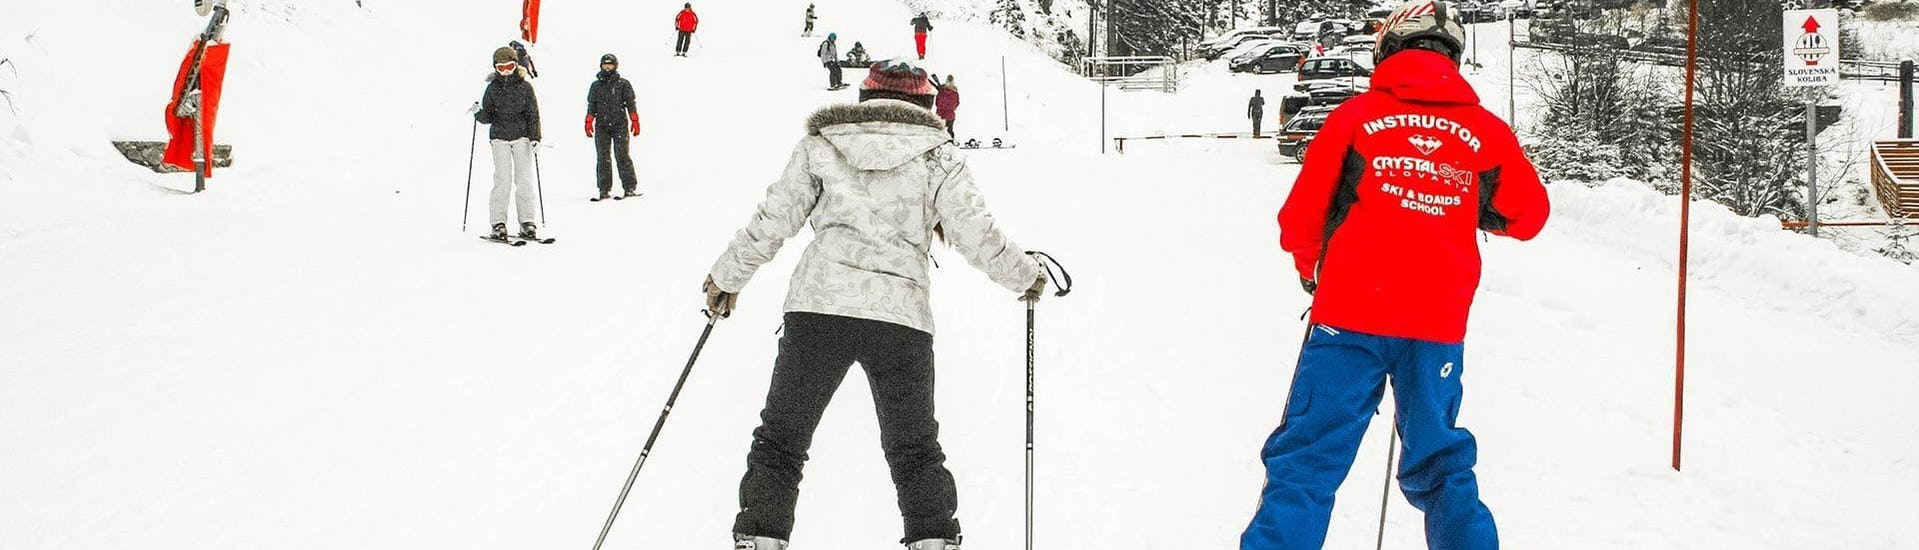 During the Private Ski Lessons for Adults - All Levels, an adult skier is benefiting from the full attention of her ski instructor from the ski school Crystal Ski.